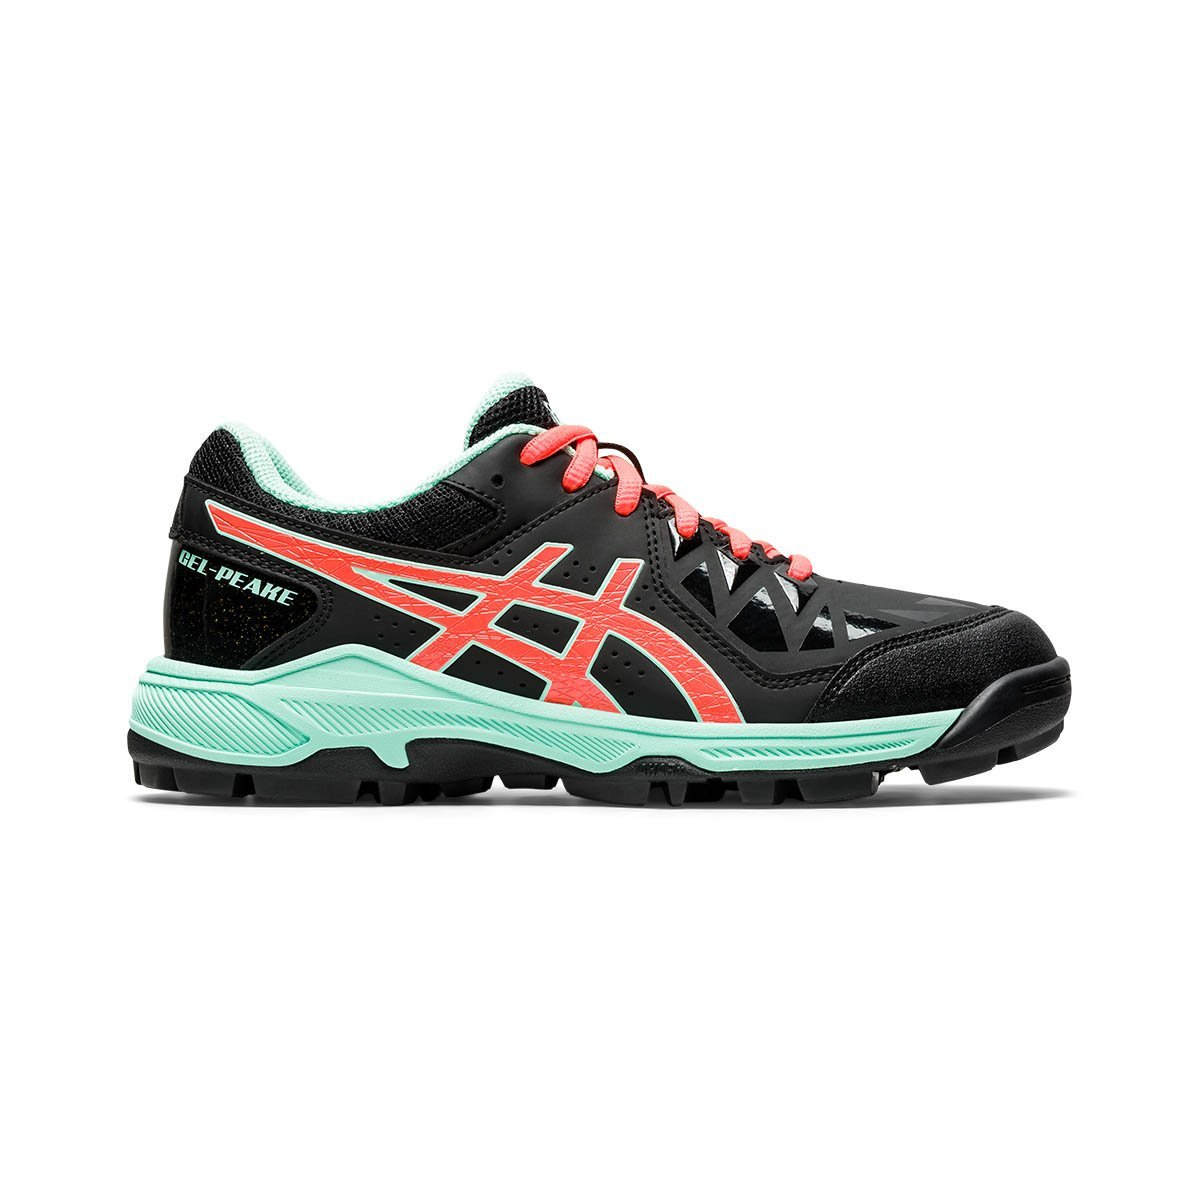 Asics Gel-Peake Black/Flash Coral (Womens) - Just Hockey